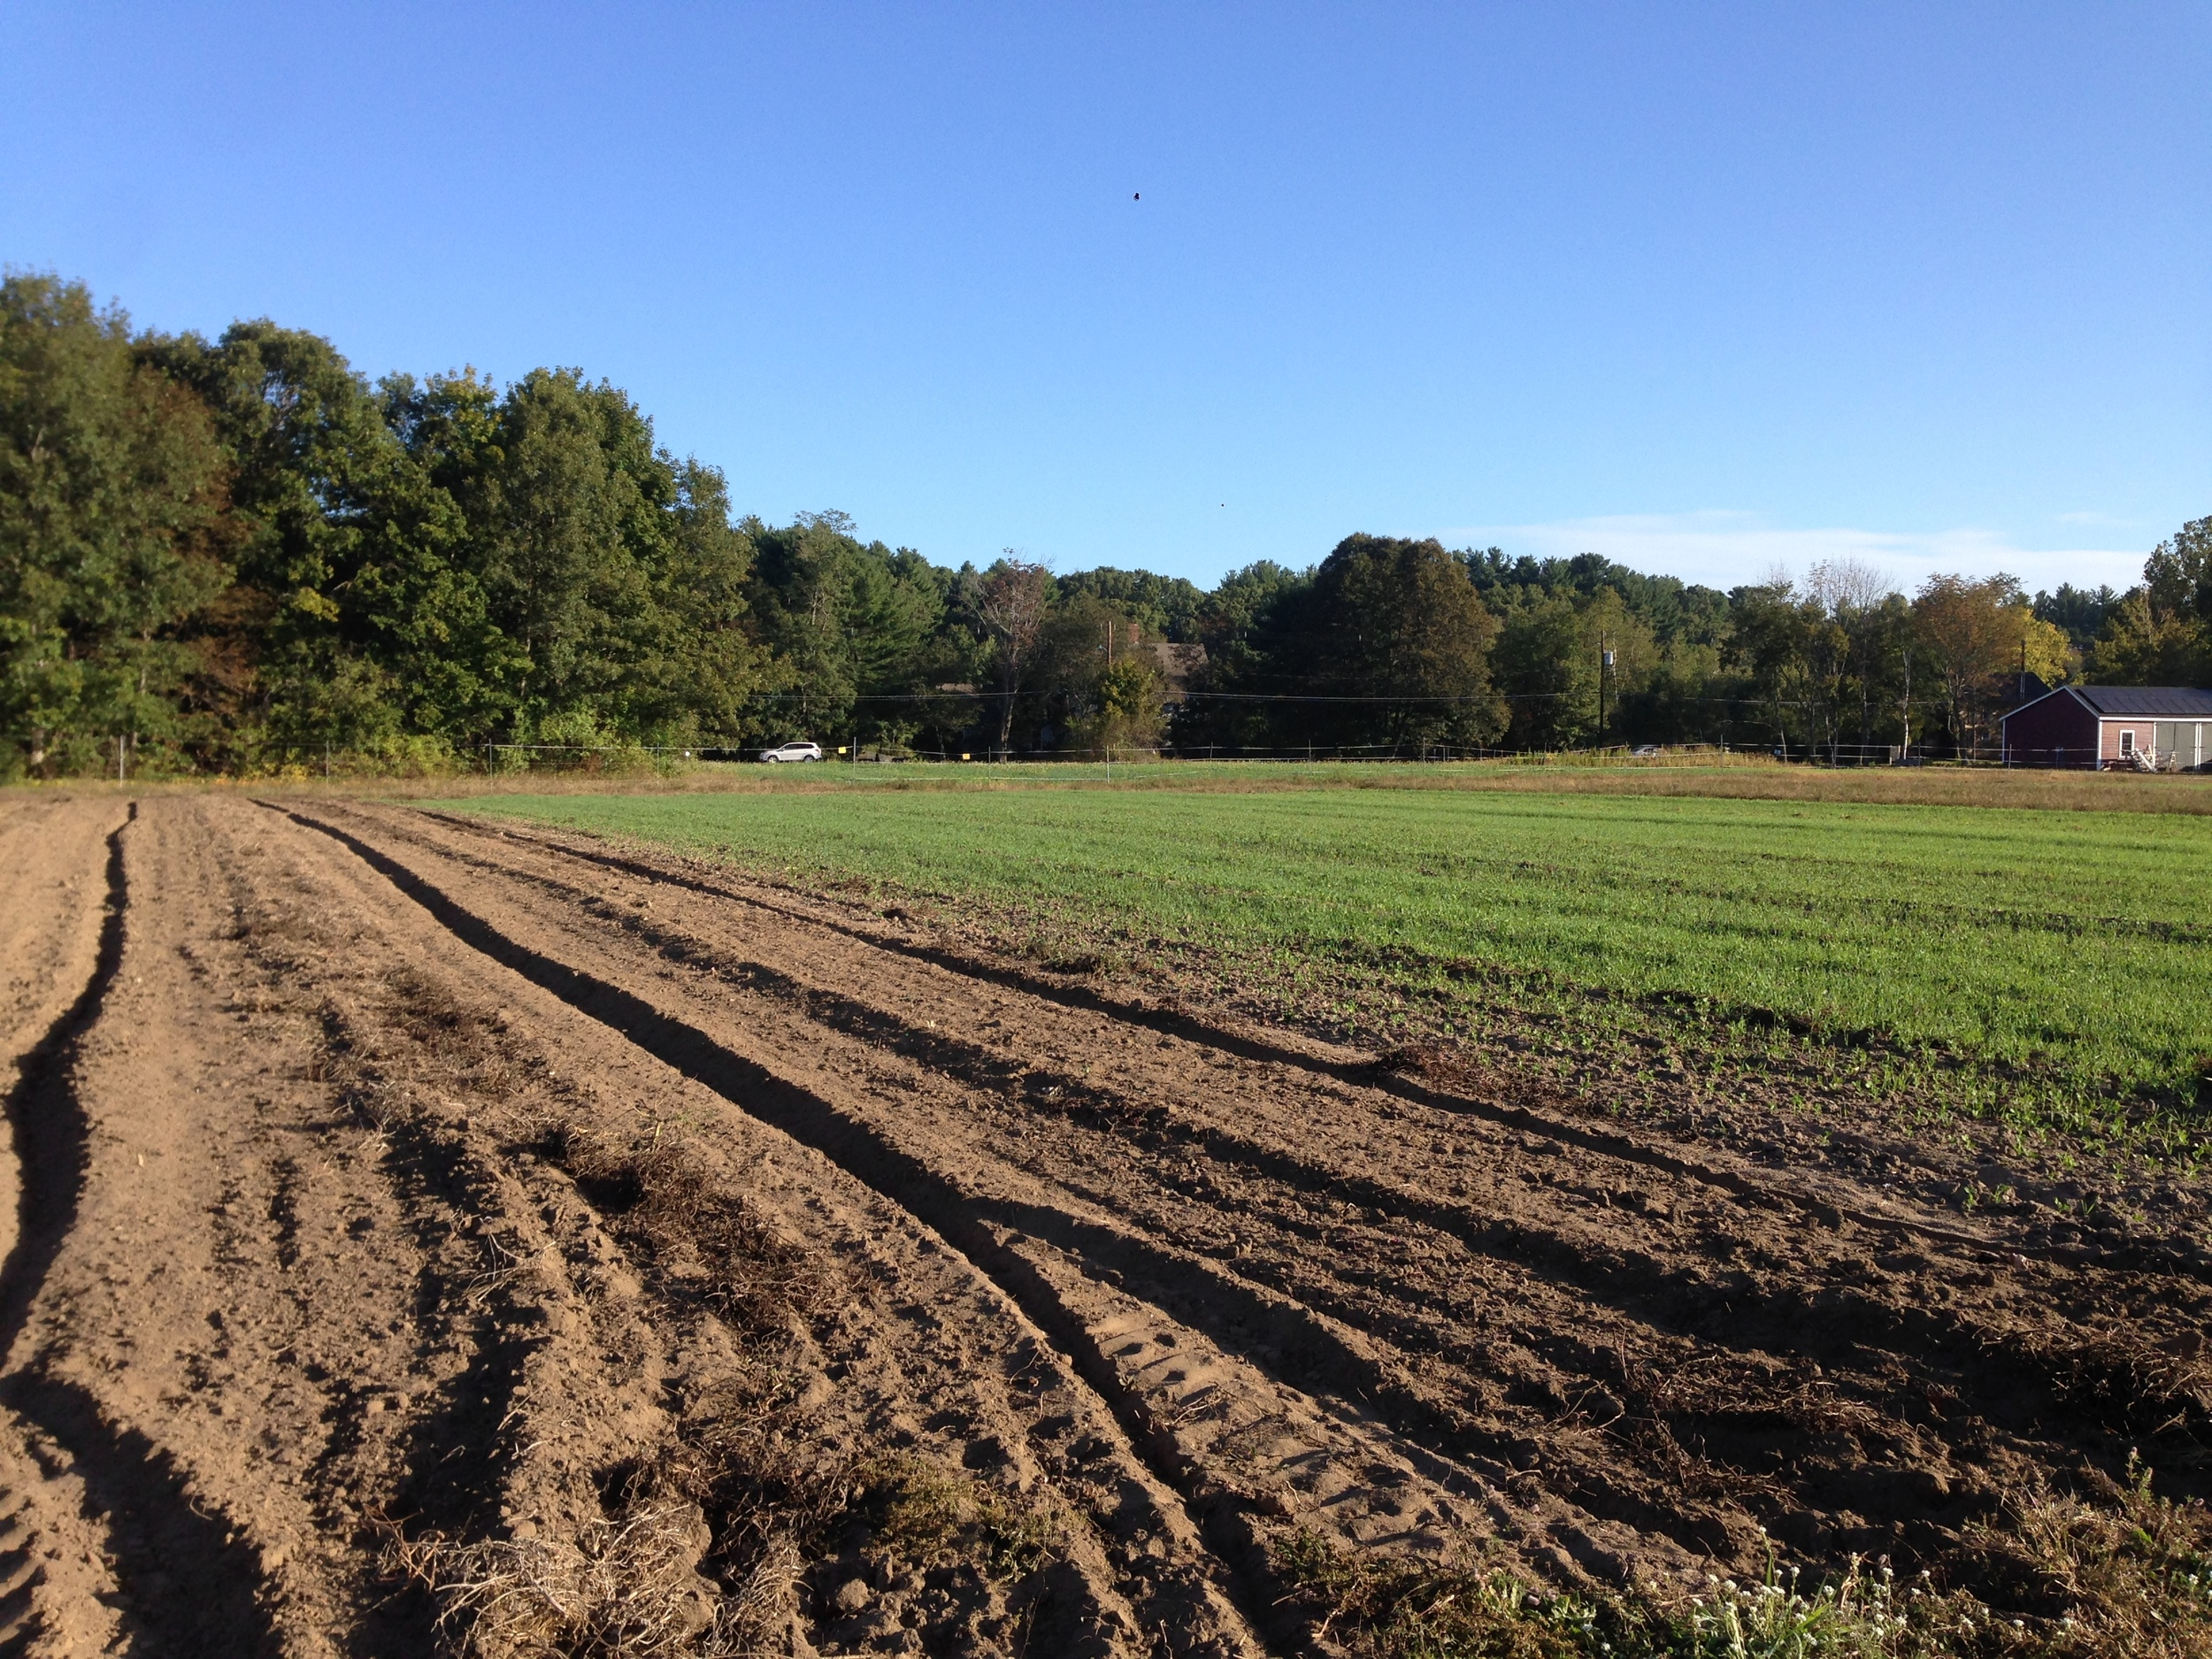 Peas and oats coming up next to a section of field ready to be seeded with winter rye.